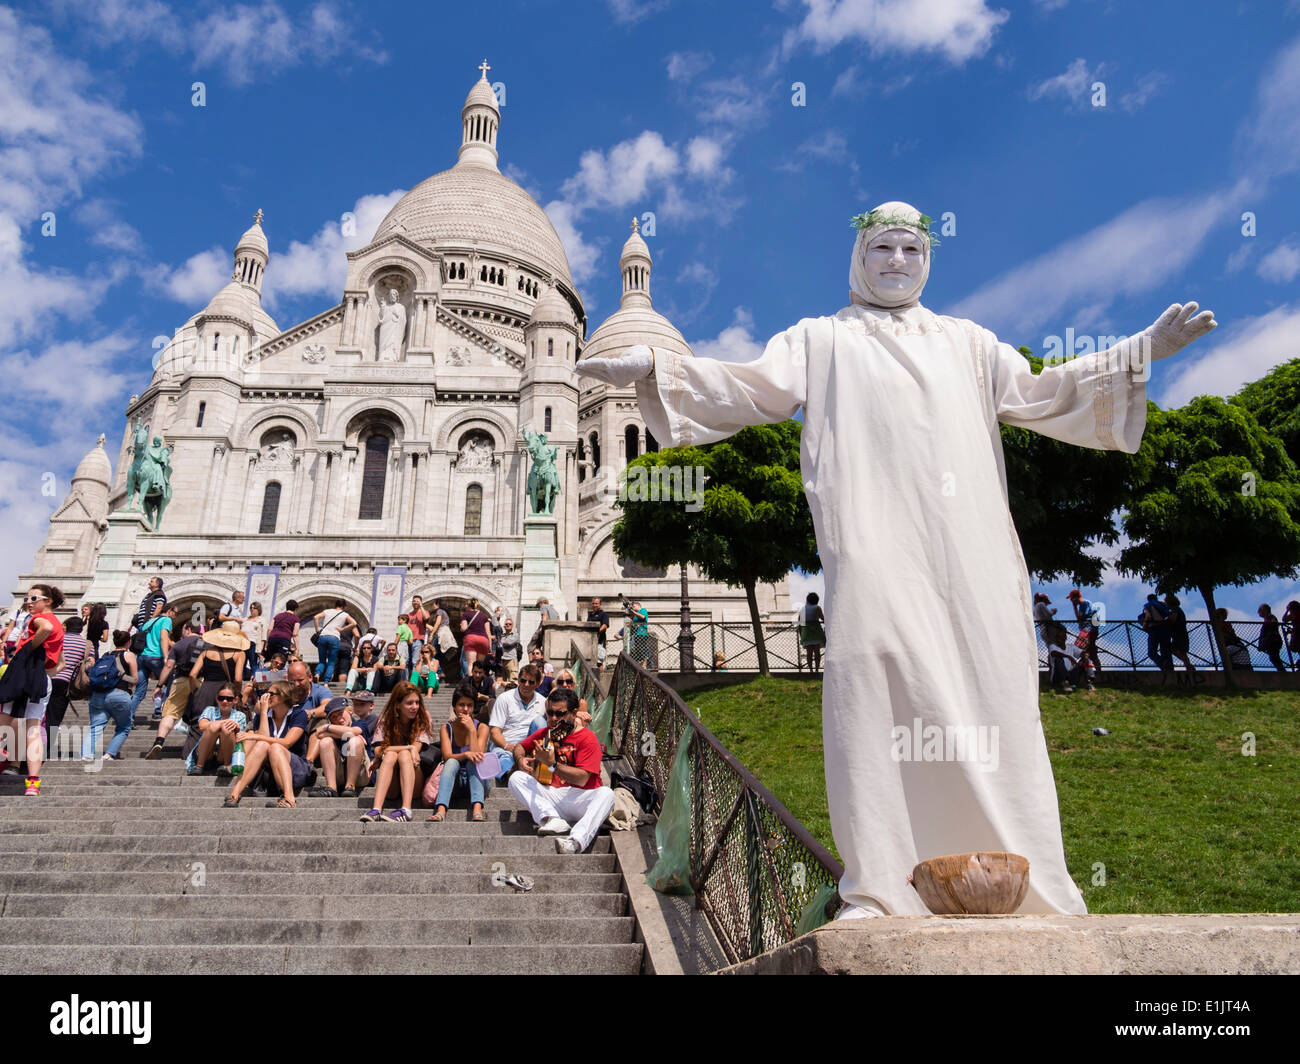 A street artist performs in front of the Basilica of the Sacre Coeur on the Montmartre hill in Paris. - Stock Image